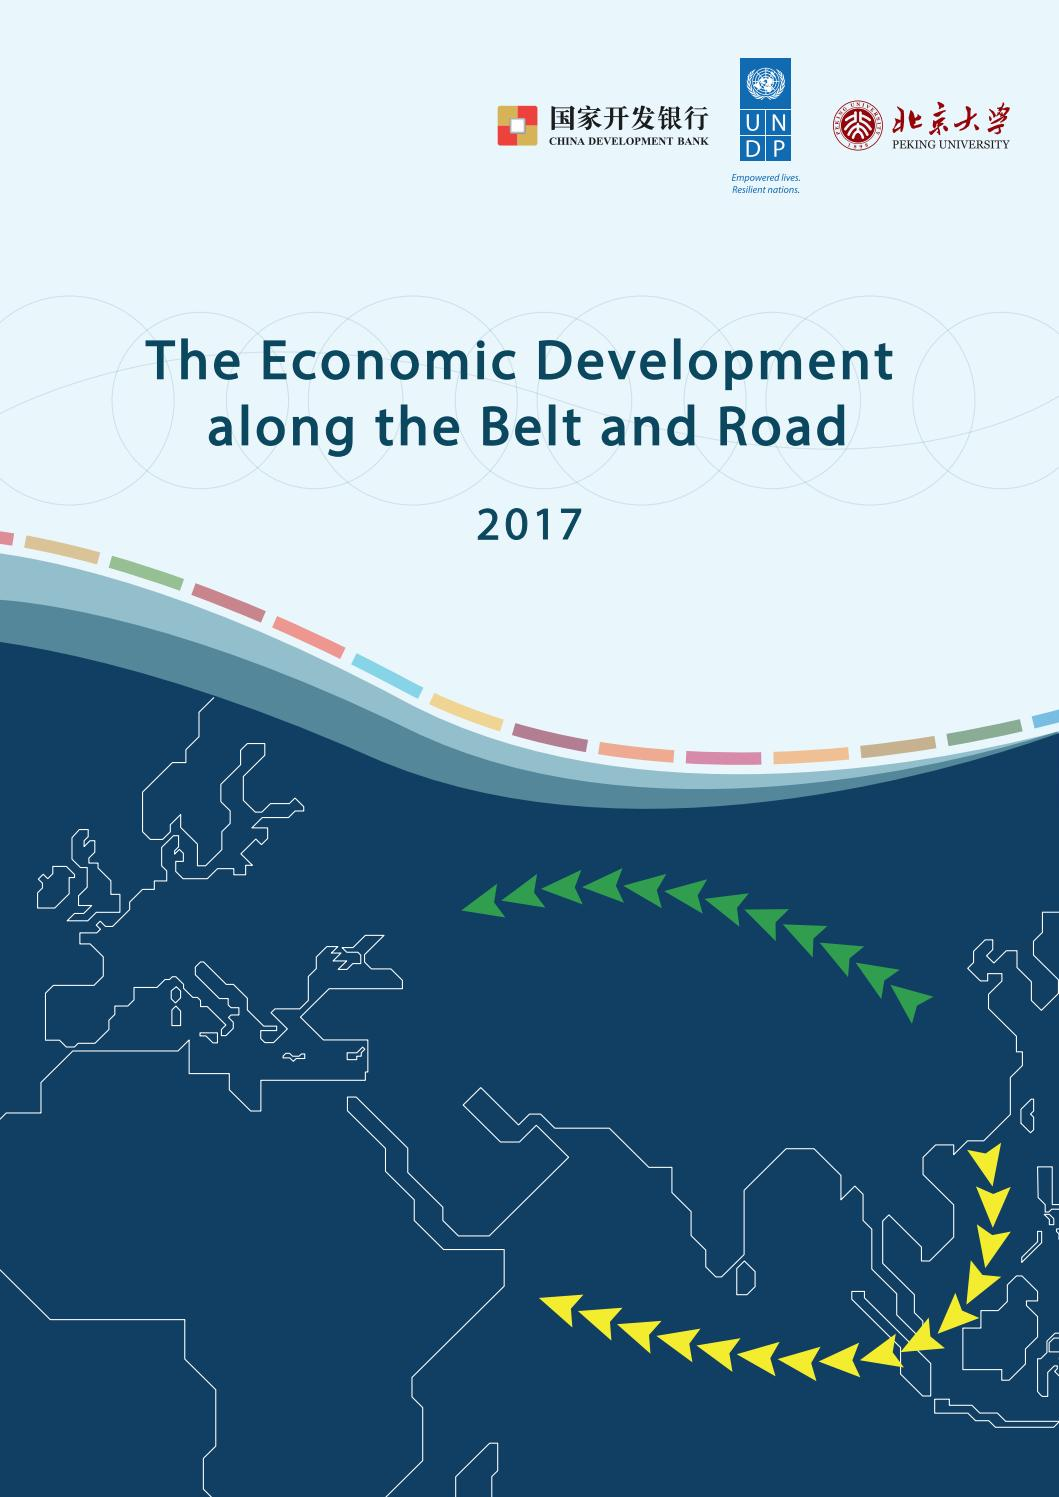 The Economic Development along the Belt and Road 2017 by